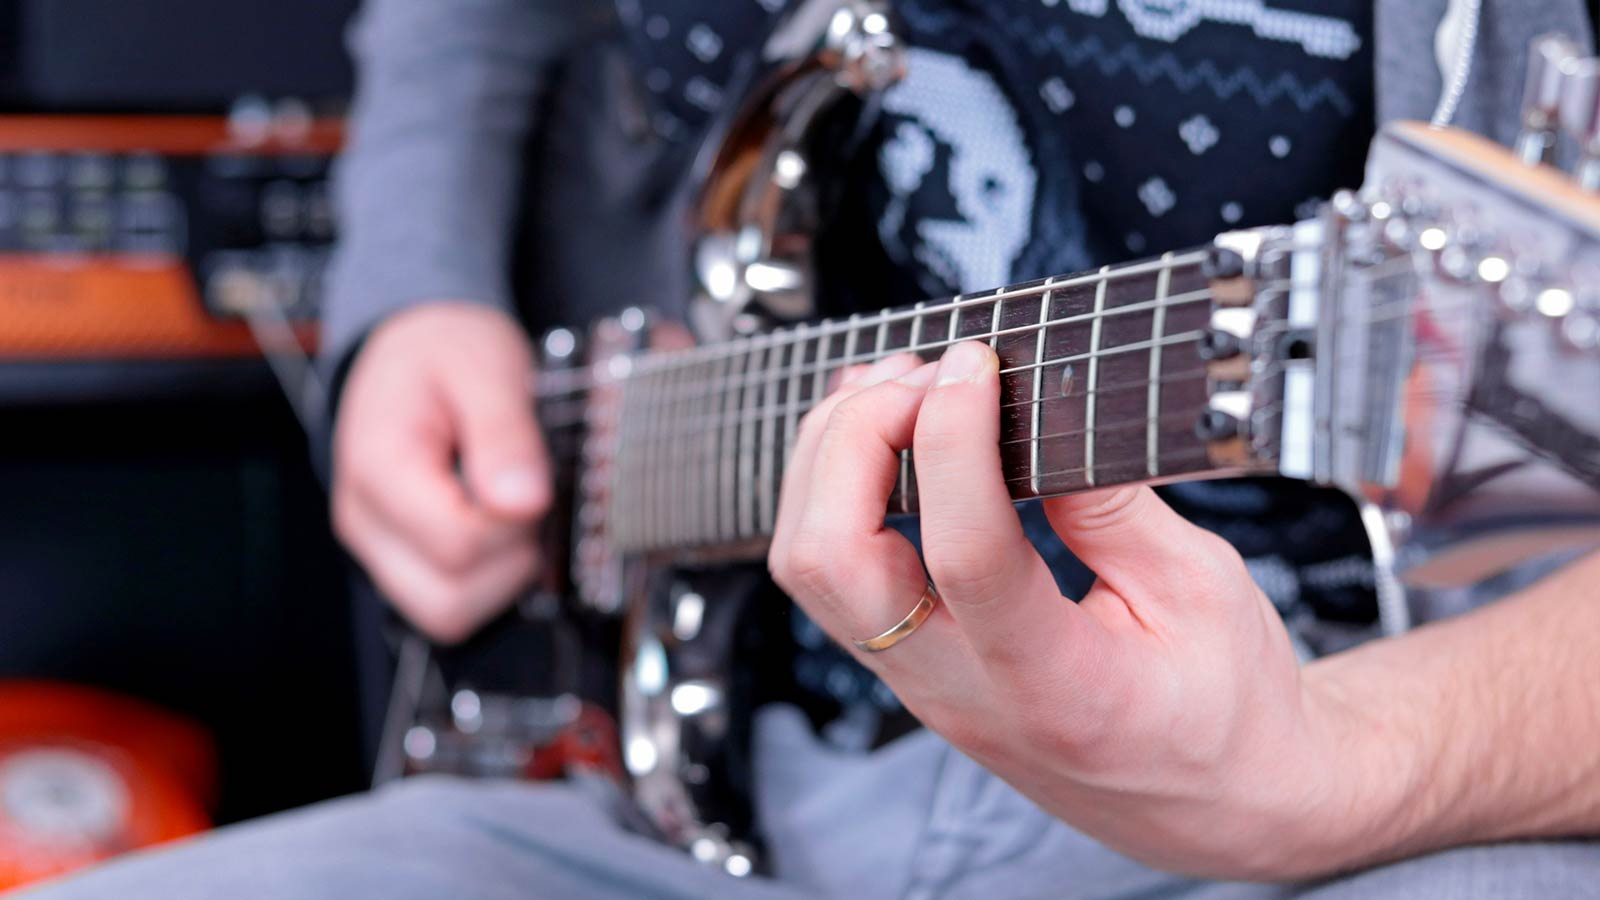 cours de guitare gratuit saturax youtube